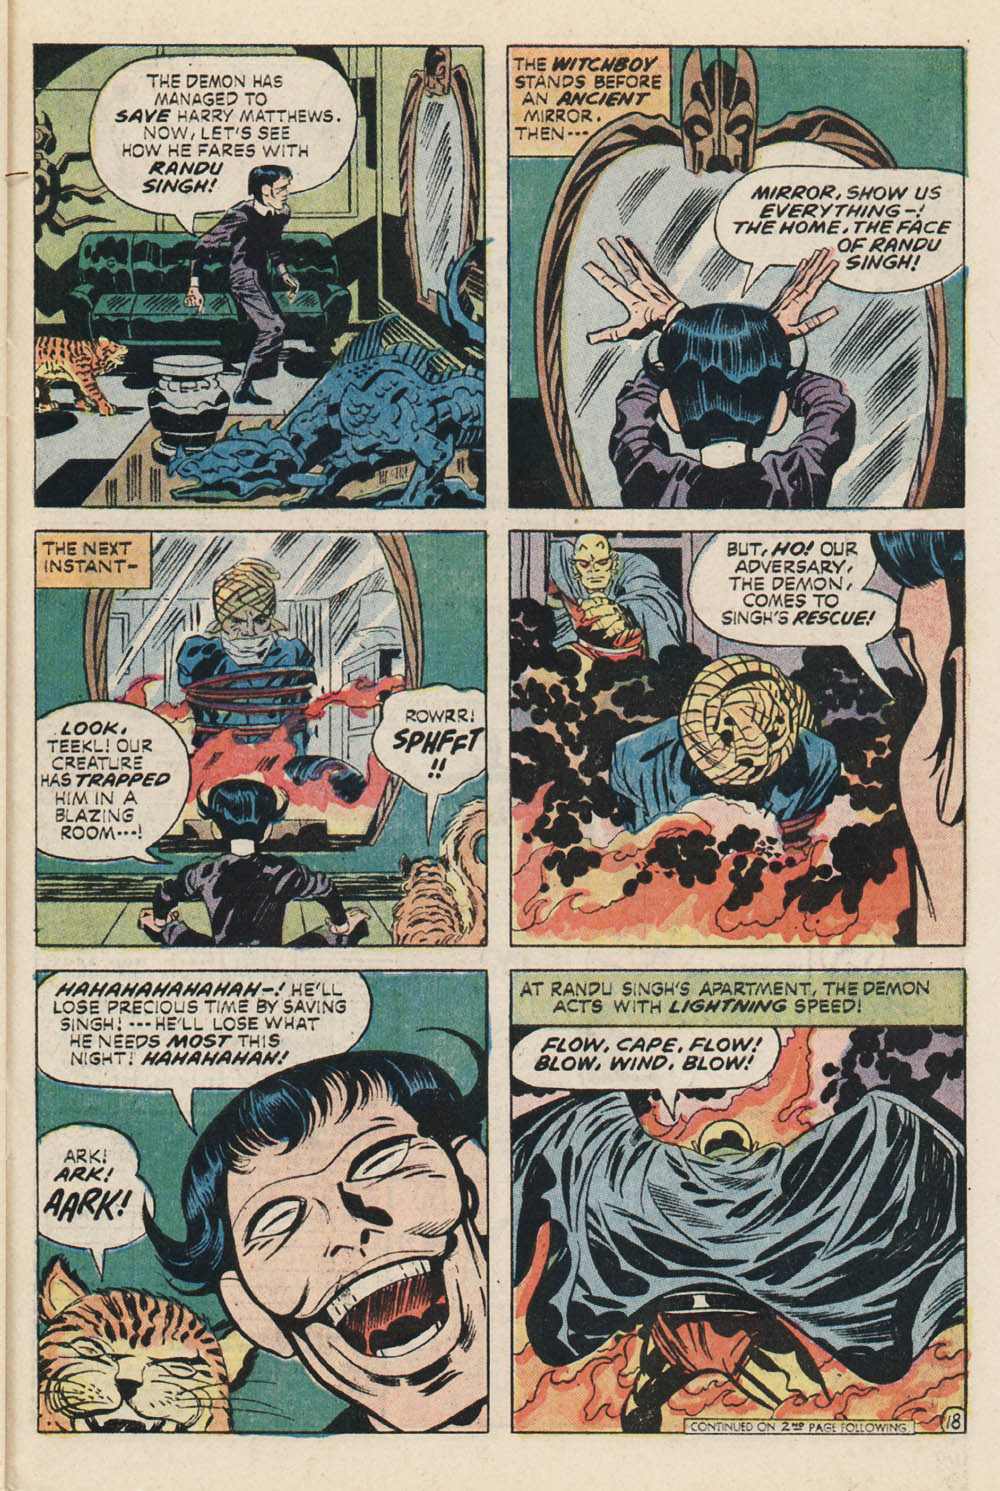 Etrigan acts with lightning speed